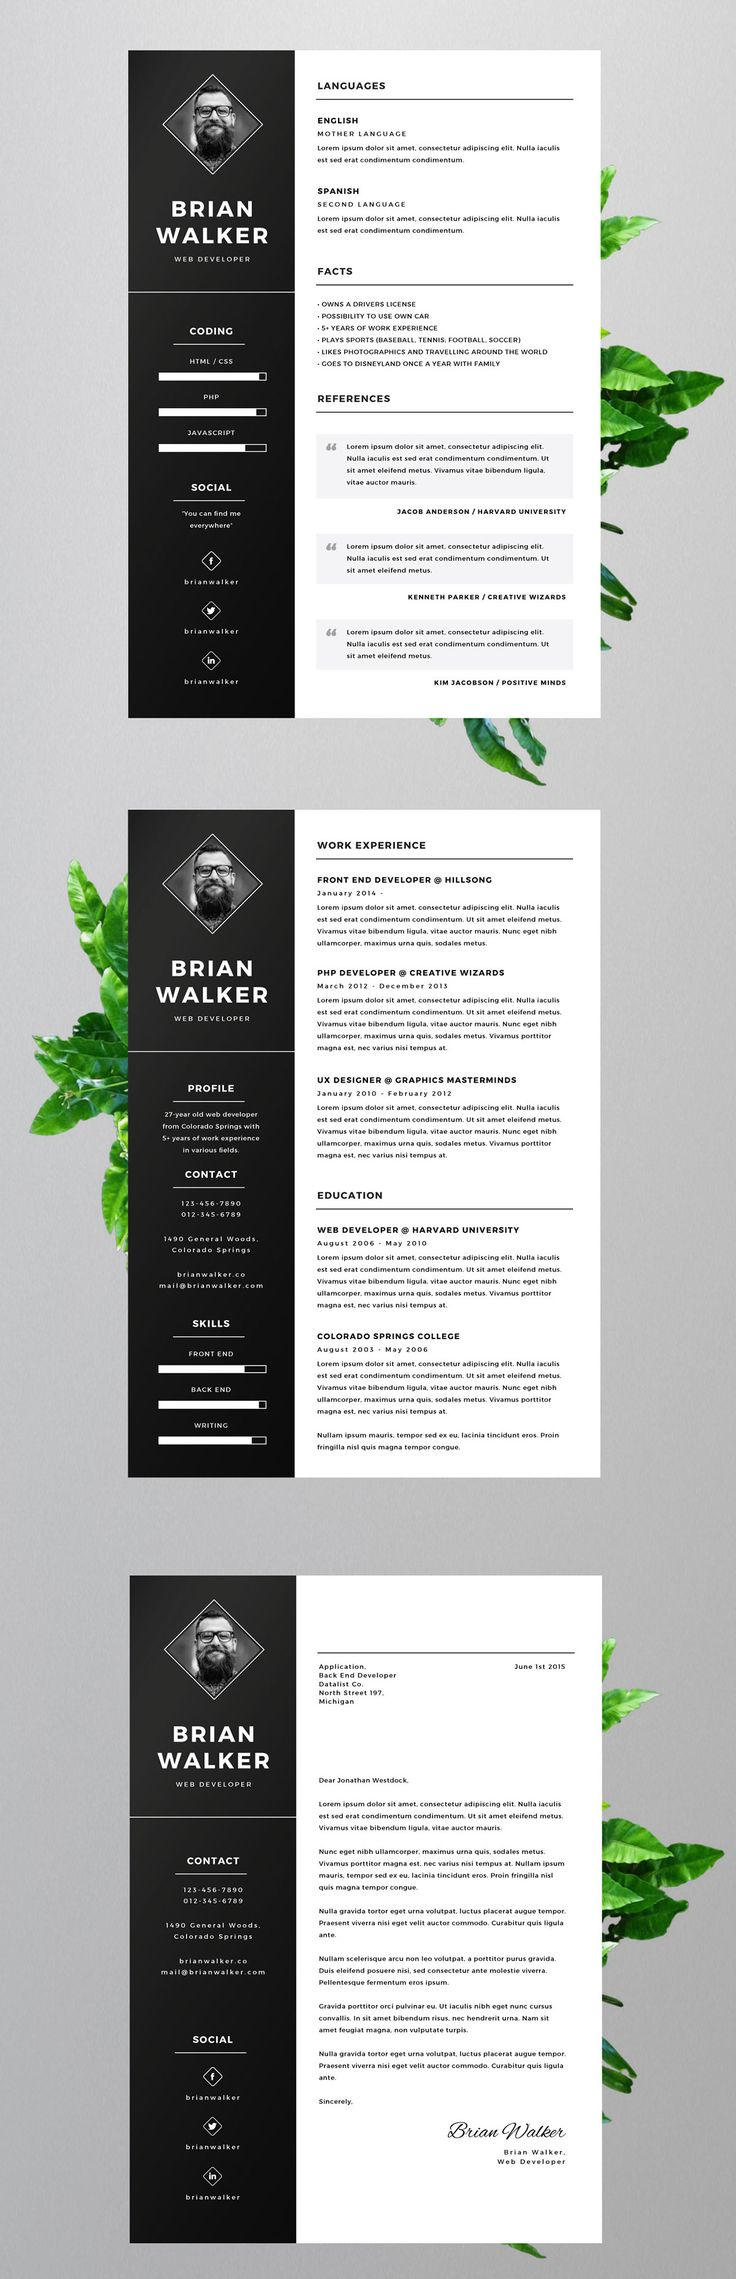 free resume template for word photoshop illustrator - Cv Resume Template Word